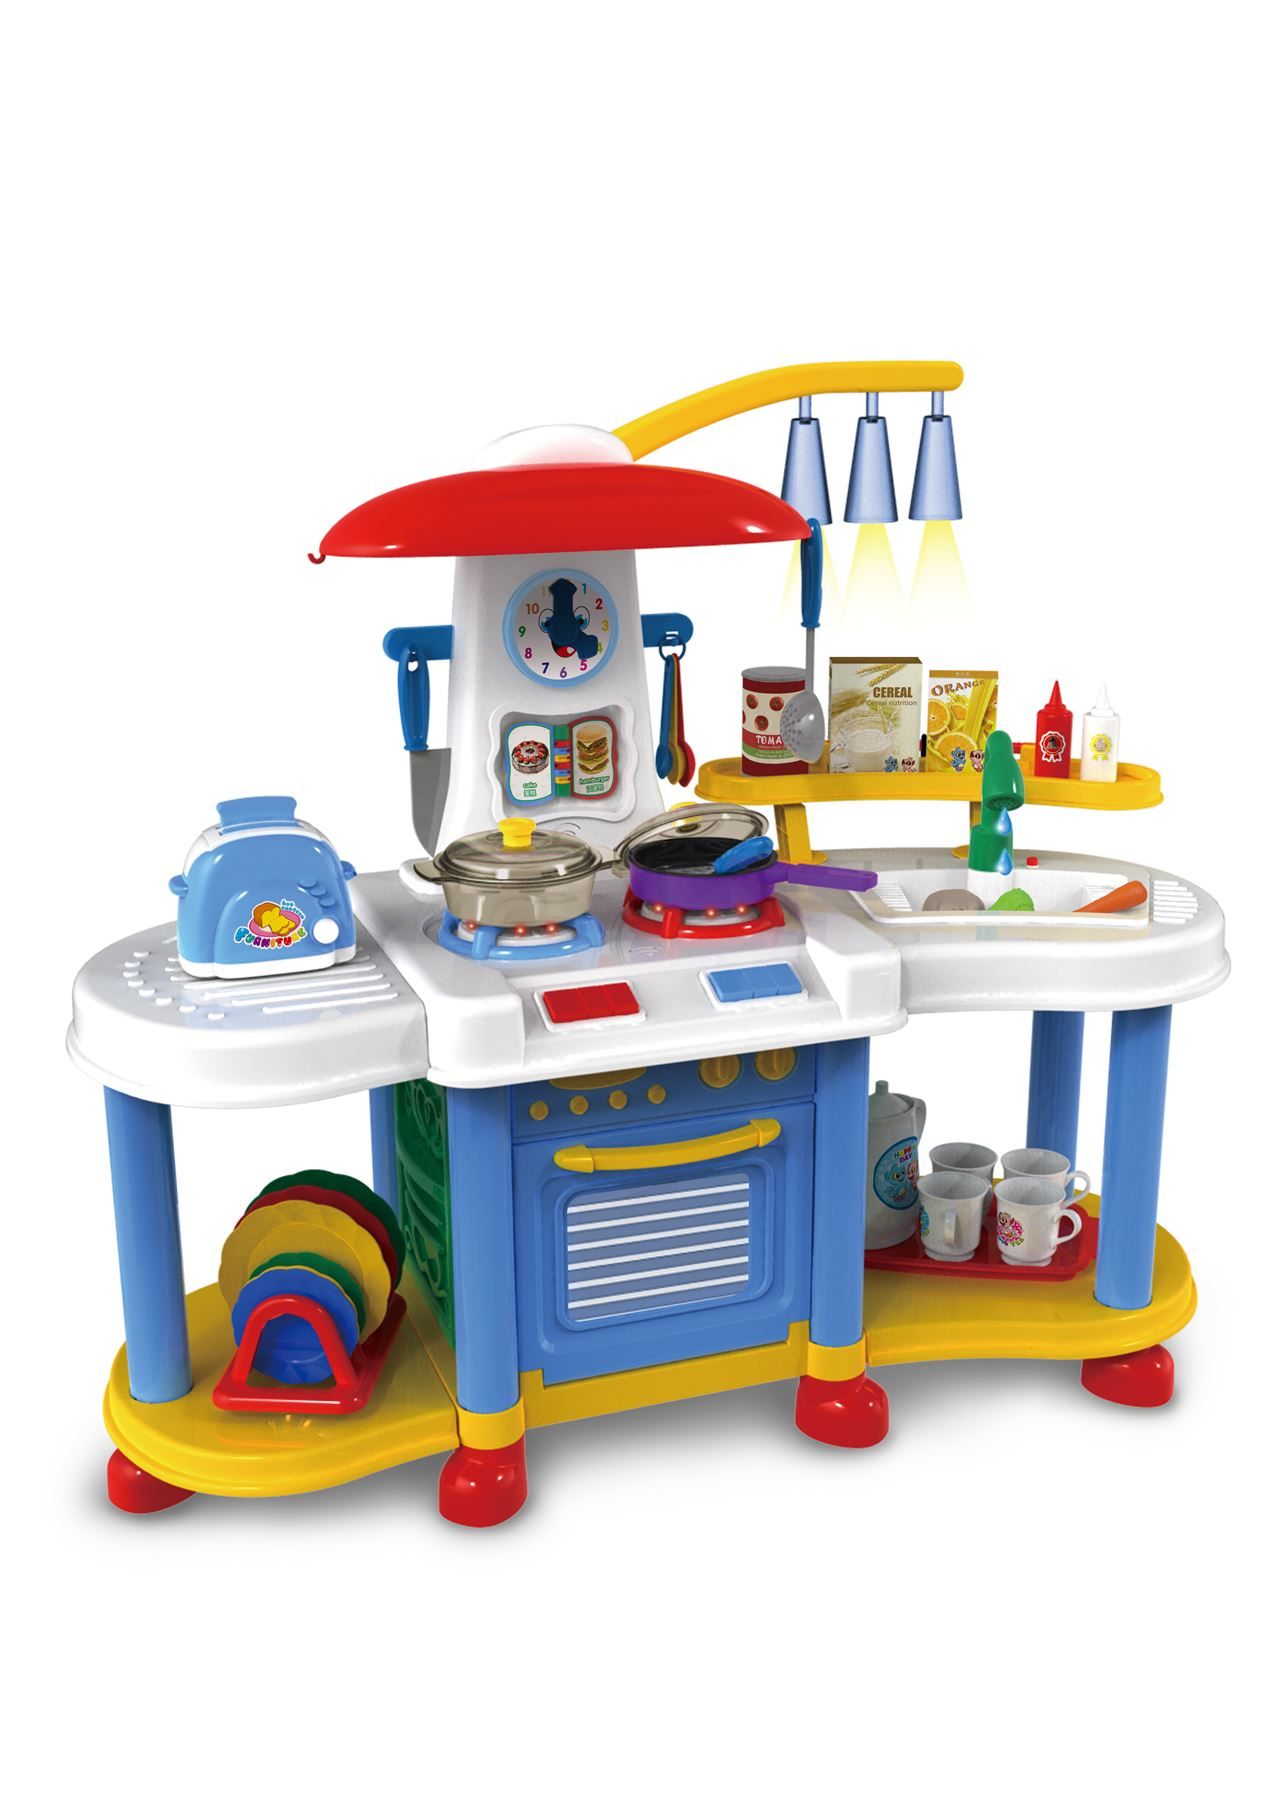 Vinsani Kitchen Food Cooking Appliances Kids Craft Pretend Play ...